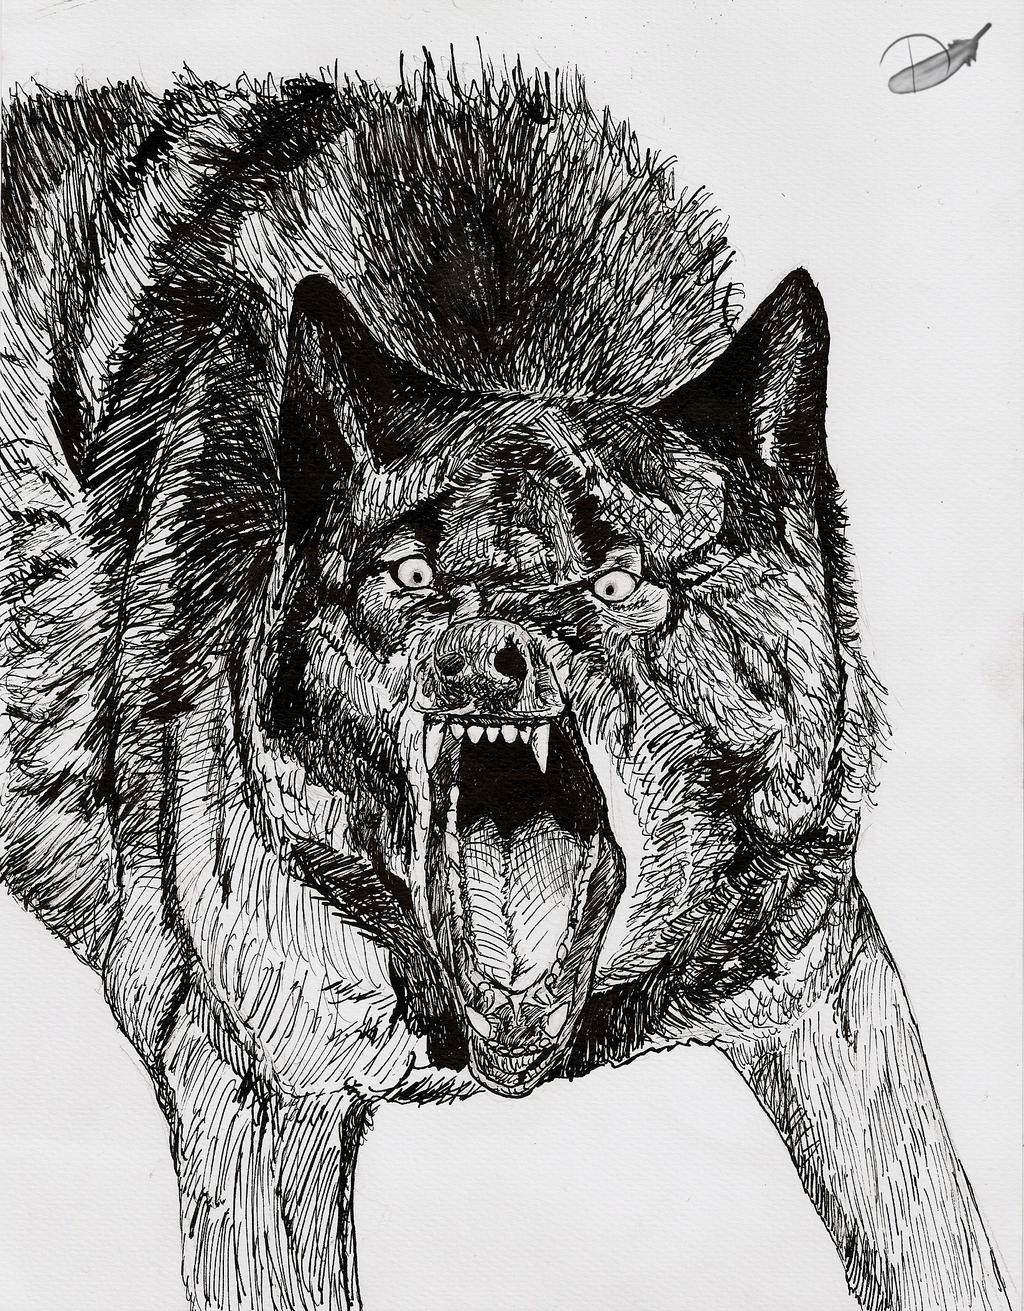 Angry Wolf by Domisea on DeviantArt